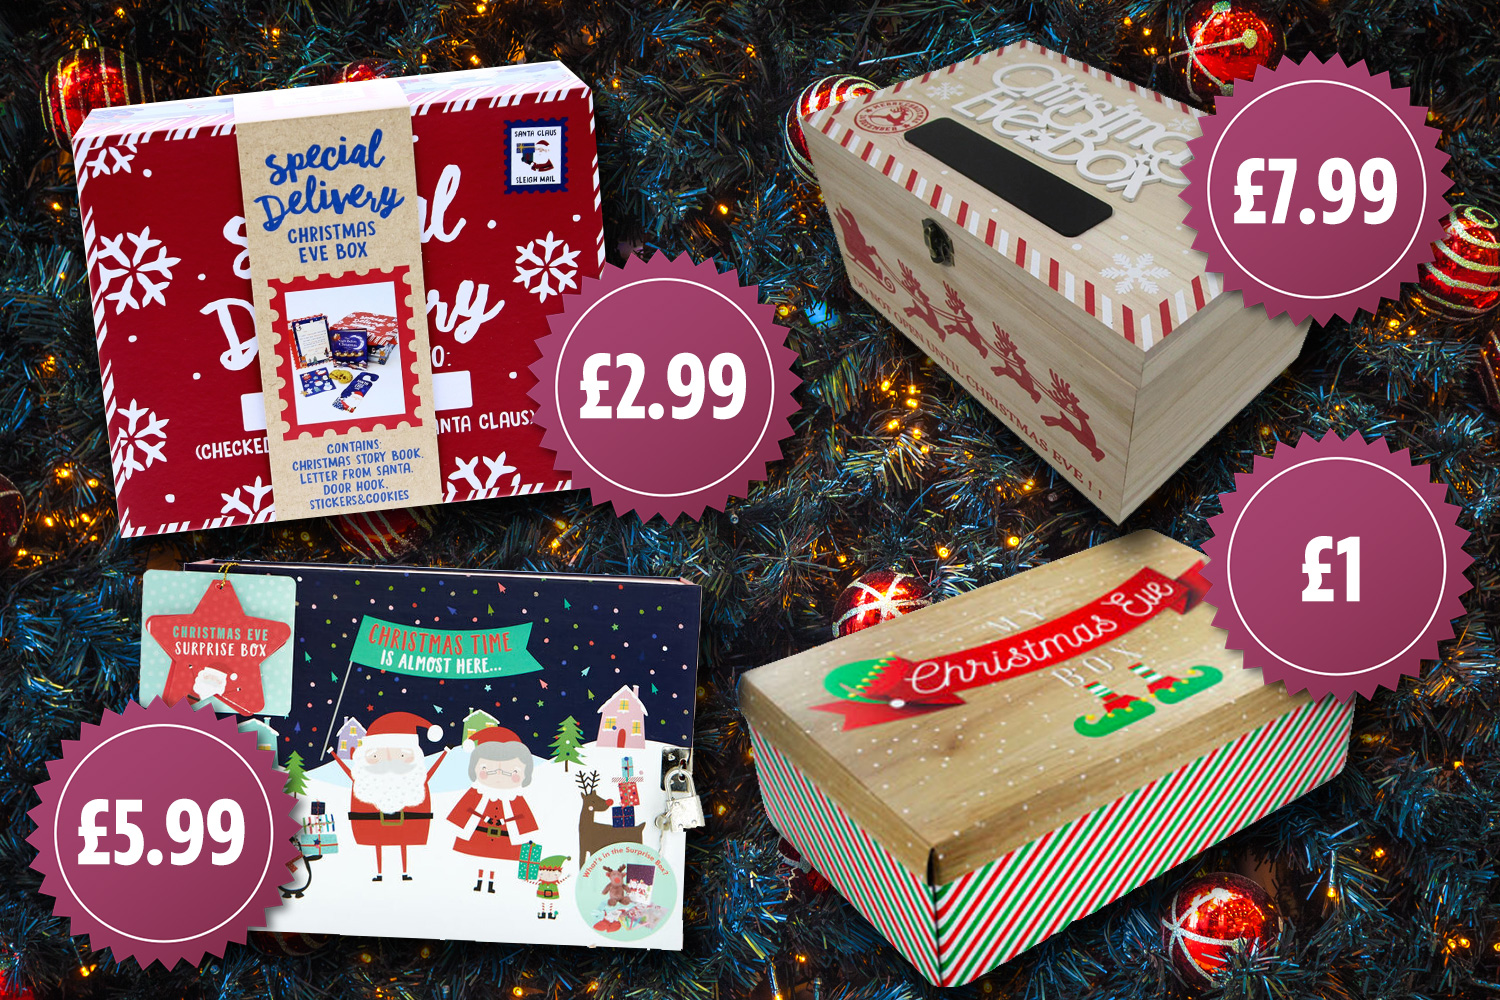 Here are our top picks for the best Christmas eve boxes